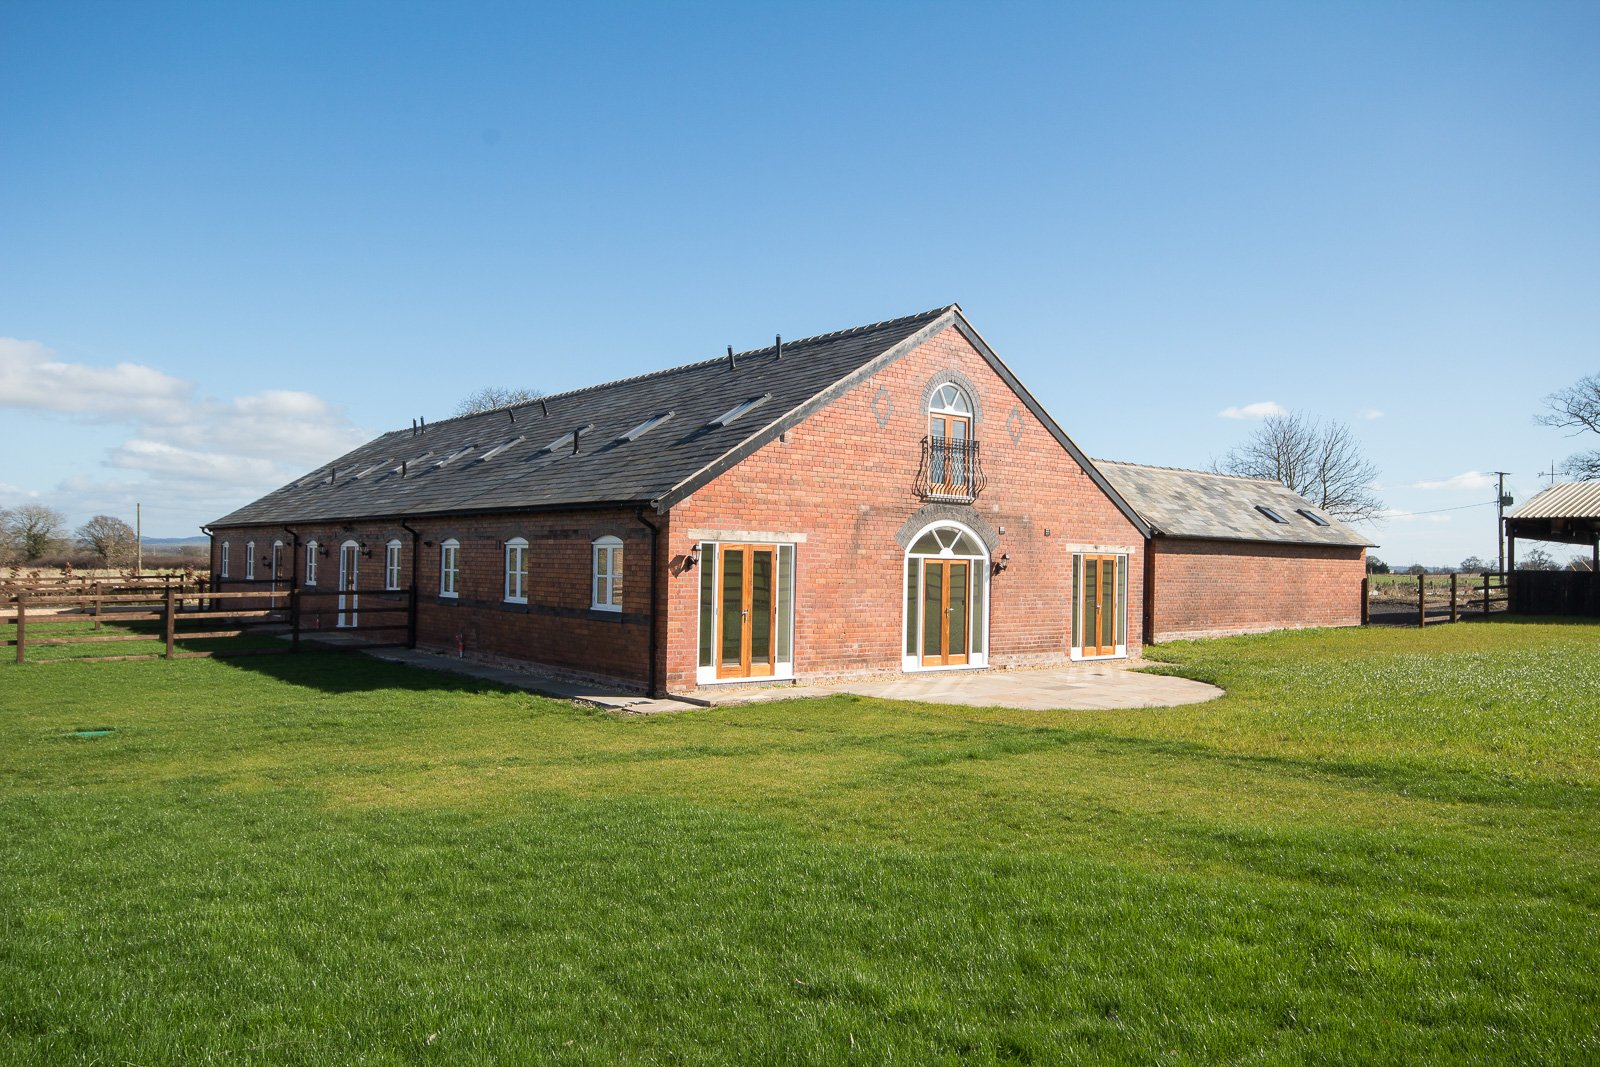 3 bedroom barn conversion for sale in holt for 3 bedroom barn house